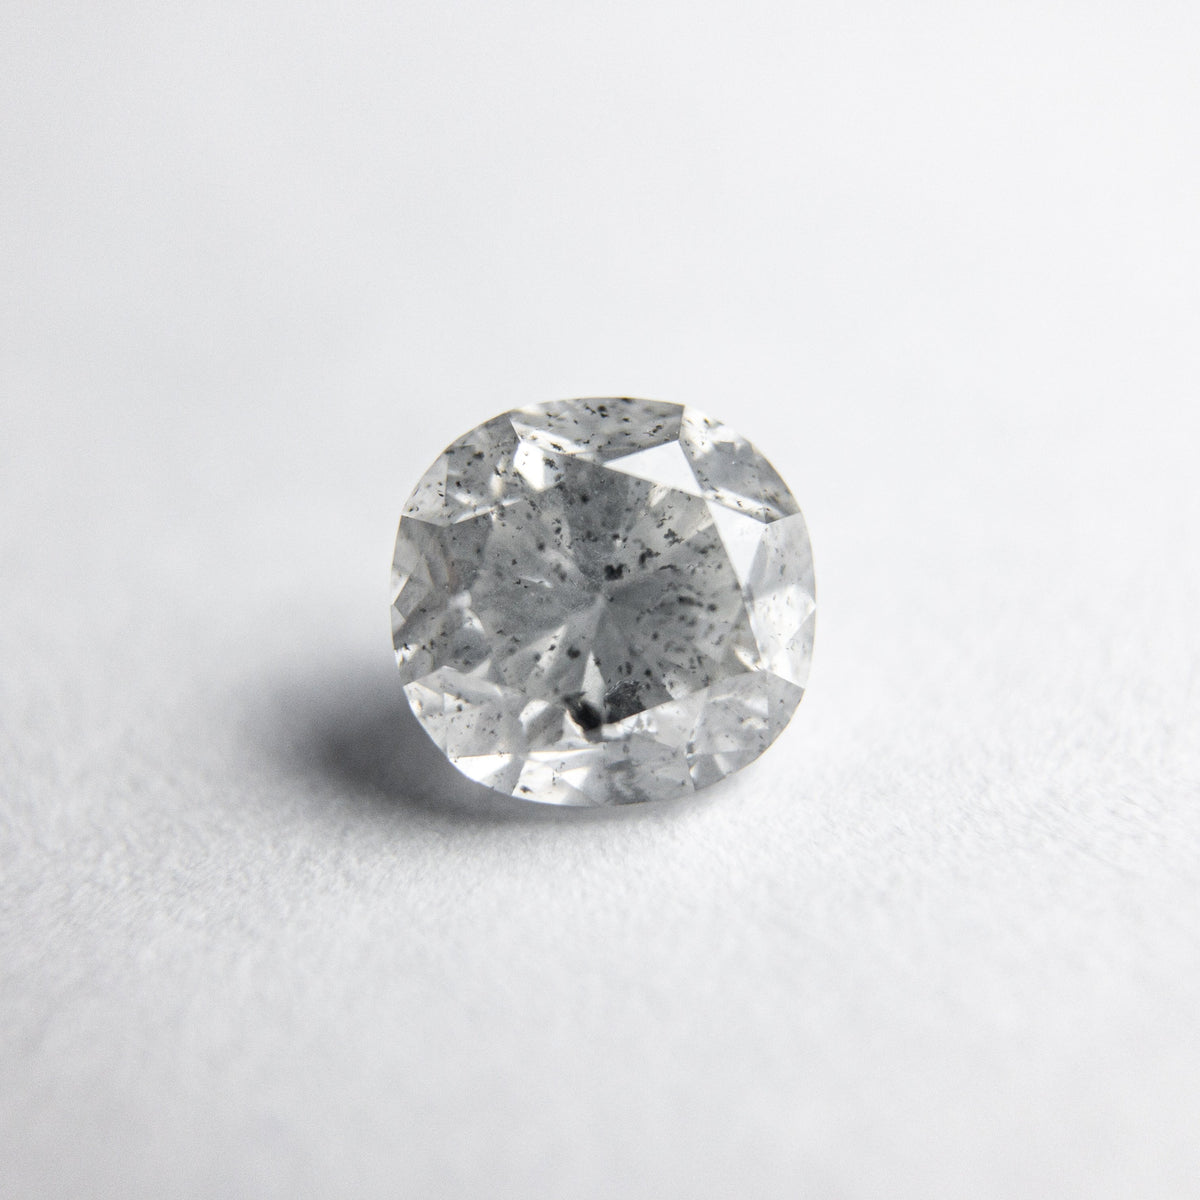 0.72ct 5.30x5.12x3.76mm Cushion Brilliant 18026-05